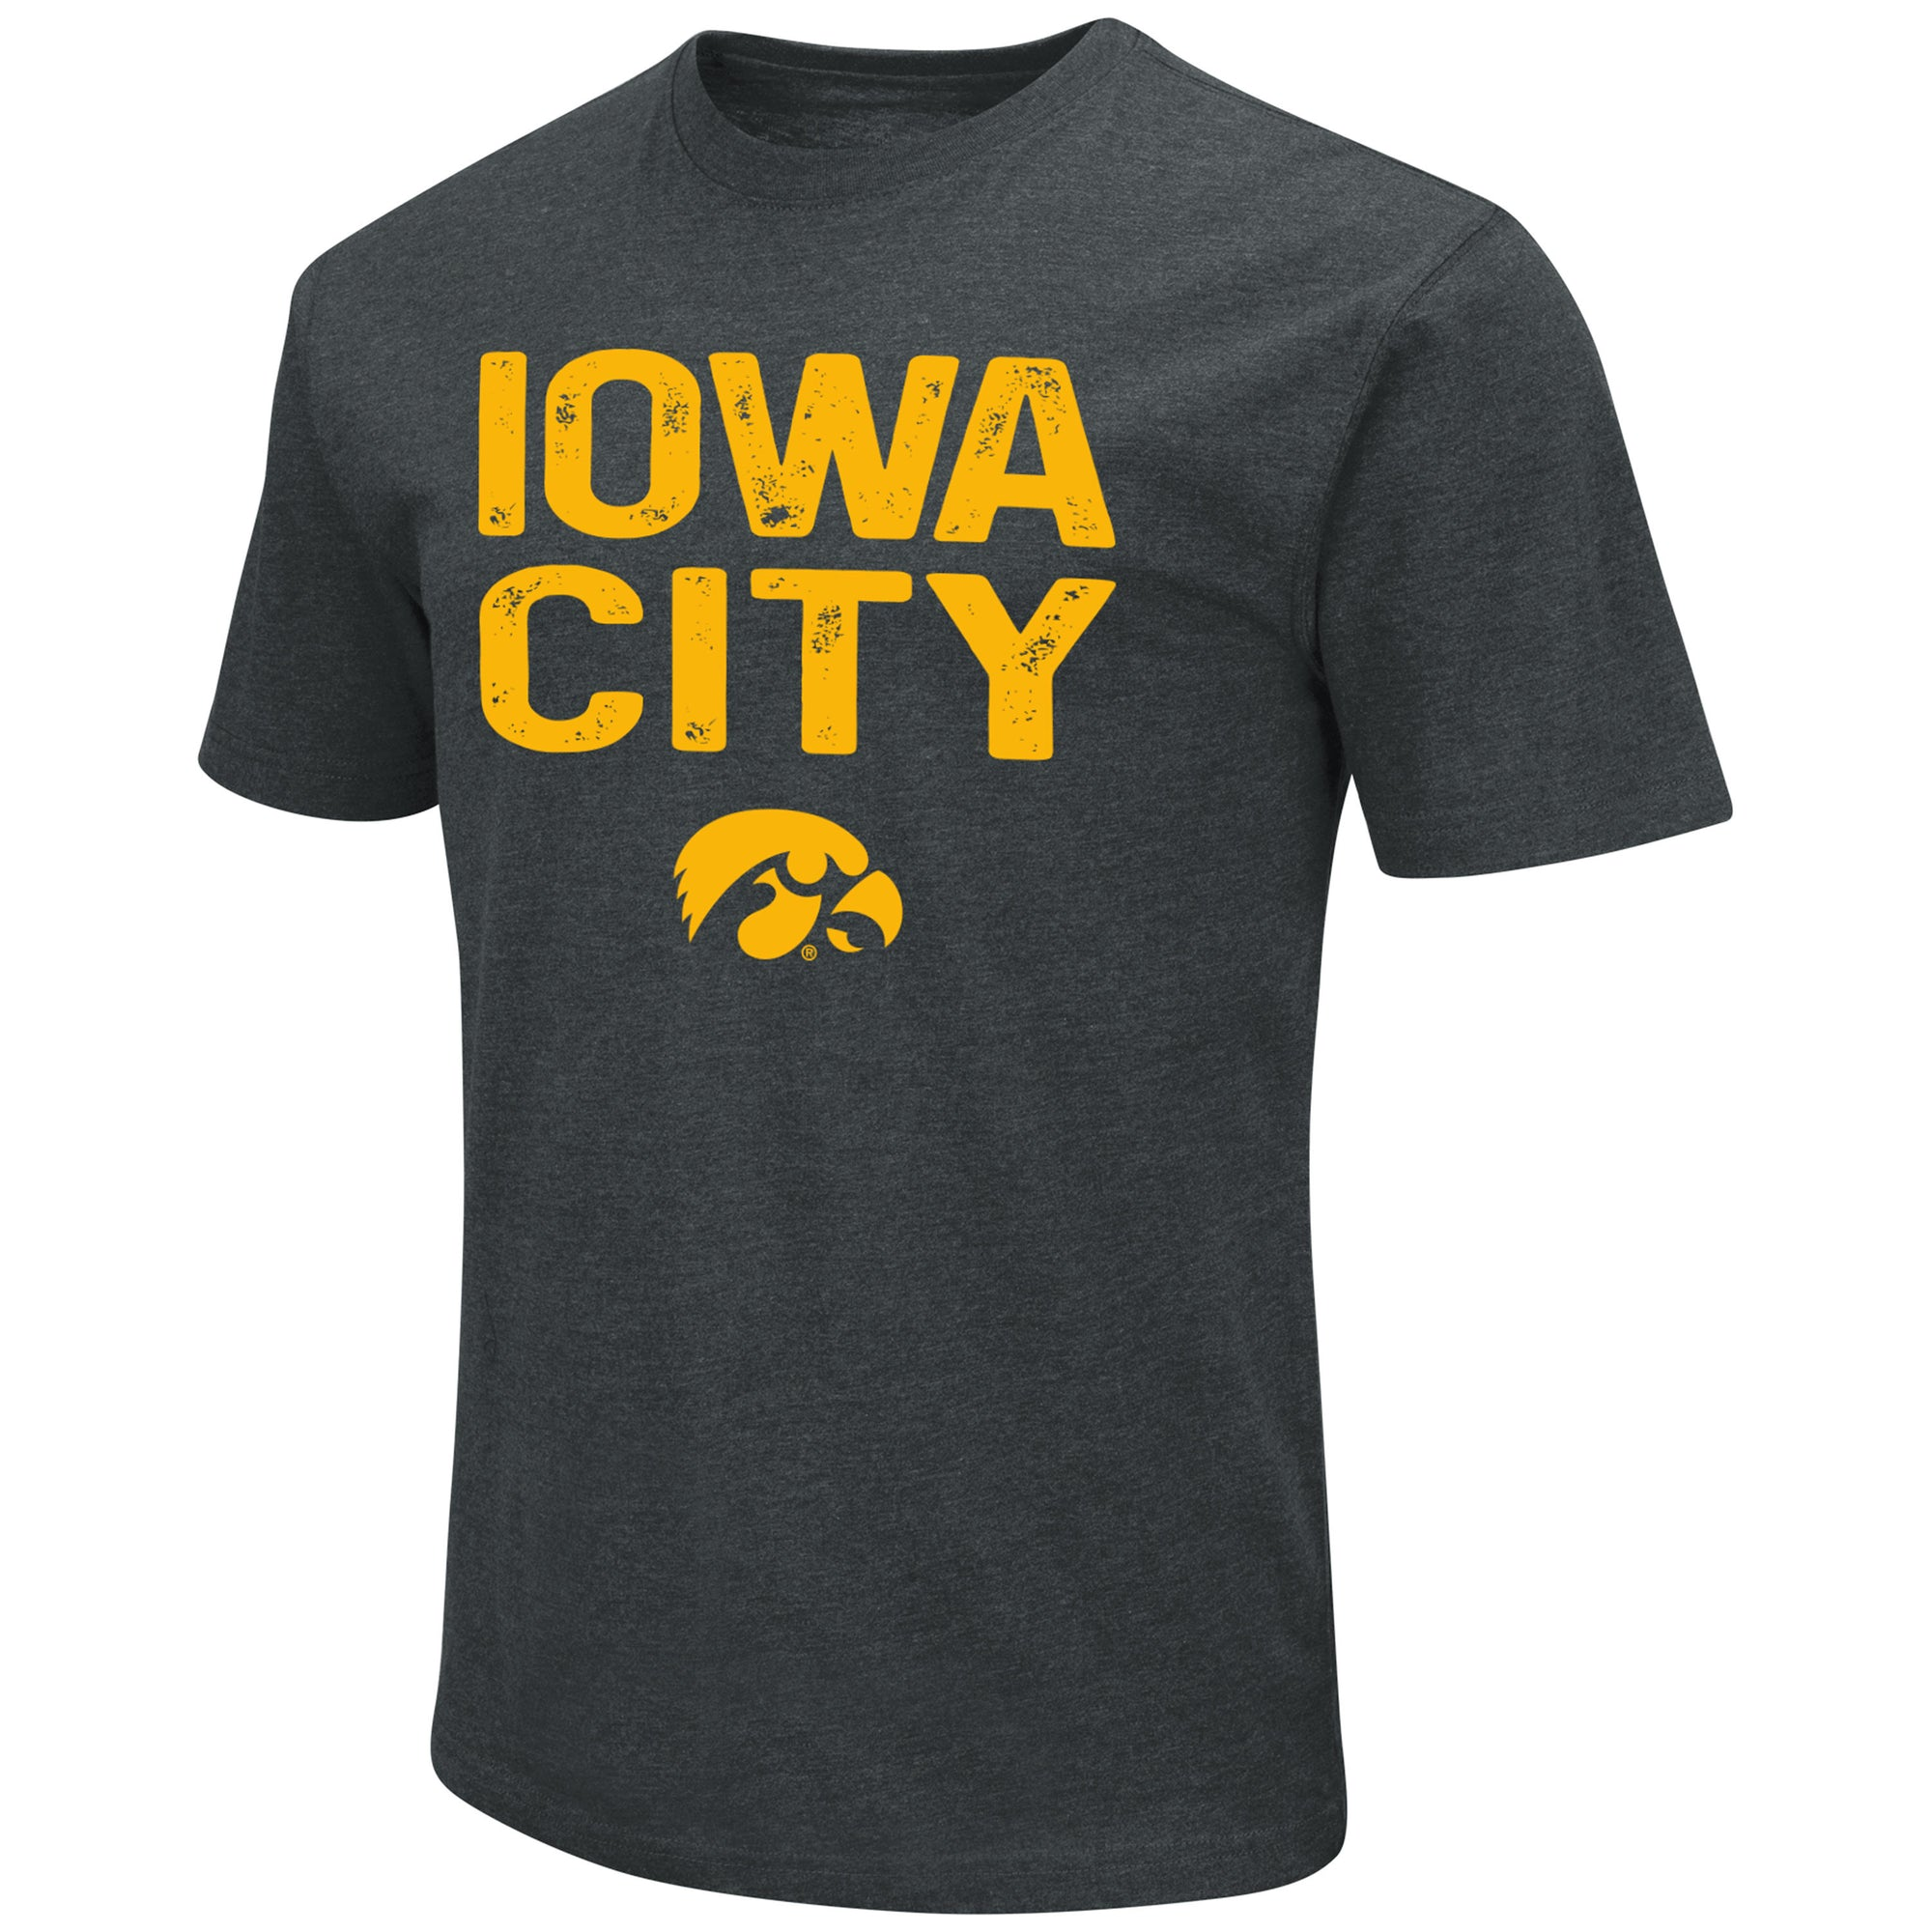 College Town Pride - IOWA